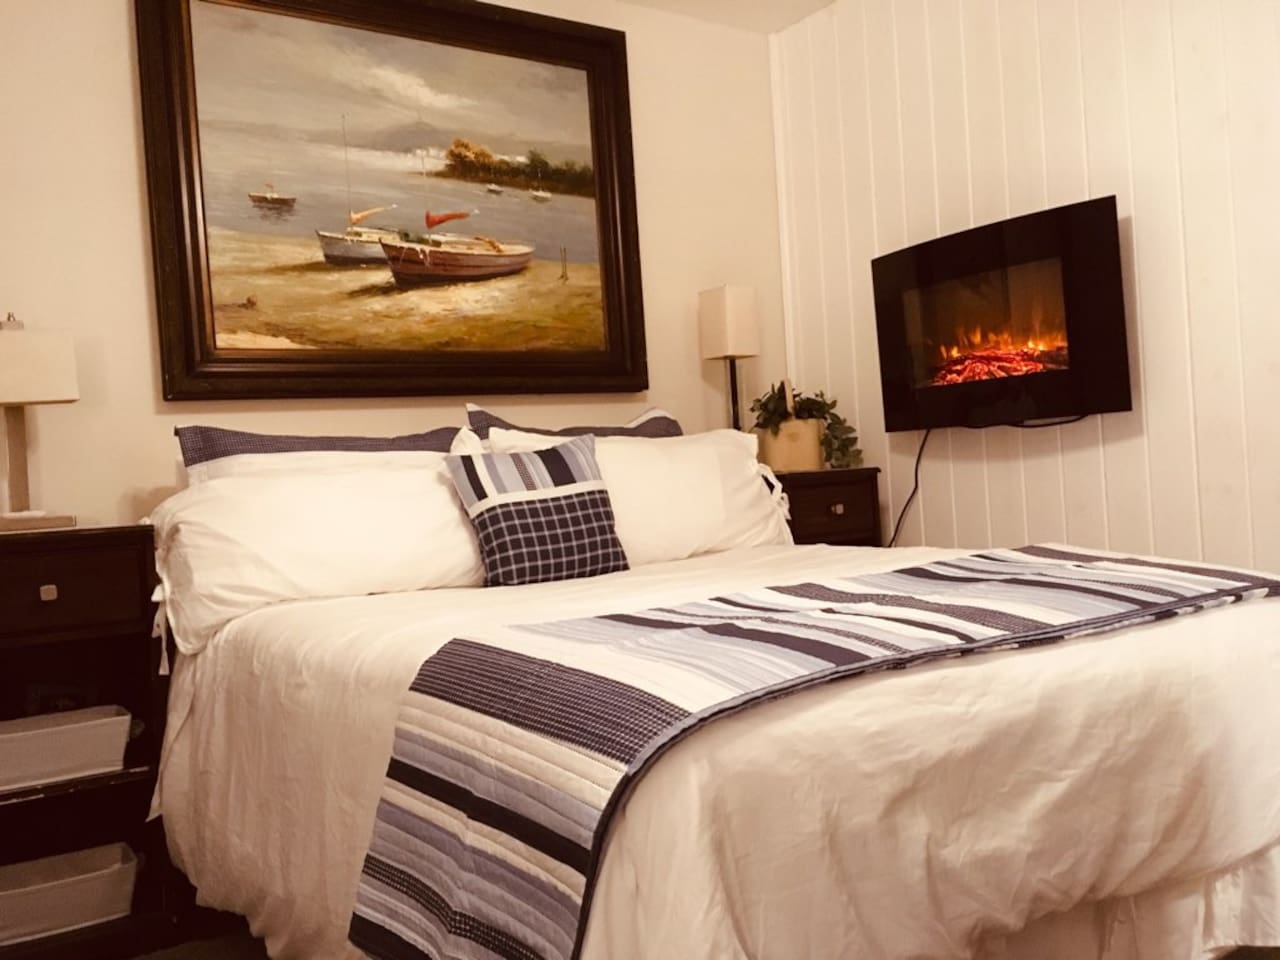 COTTAGE SUITE PRIVATE ENTRANCE & WALKWAY TO ONE ROOM STUDIO & WITH SM PRIVATE BATH LOCATED IN OLD NORTHWOOD HILLS NEIGHBORHOOD  driving distance to PORT OF PALM BEACH 4 MILES SINGER ISLAND BEACHES, & DOWNTOWN CLEMATIS & CITY PLACE& CONVENTION CENTER